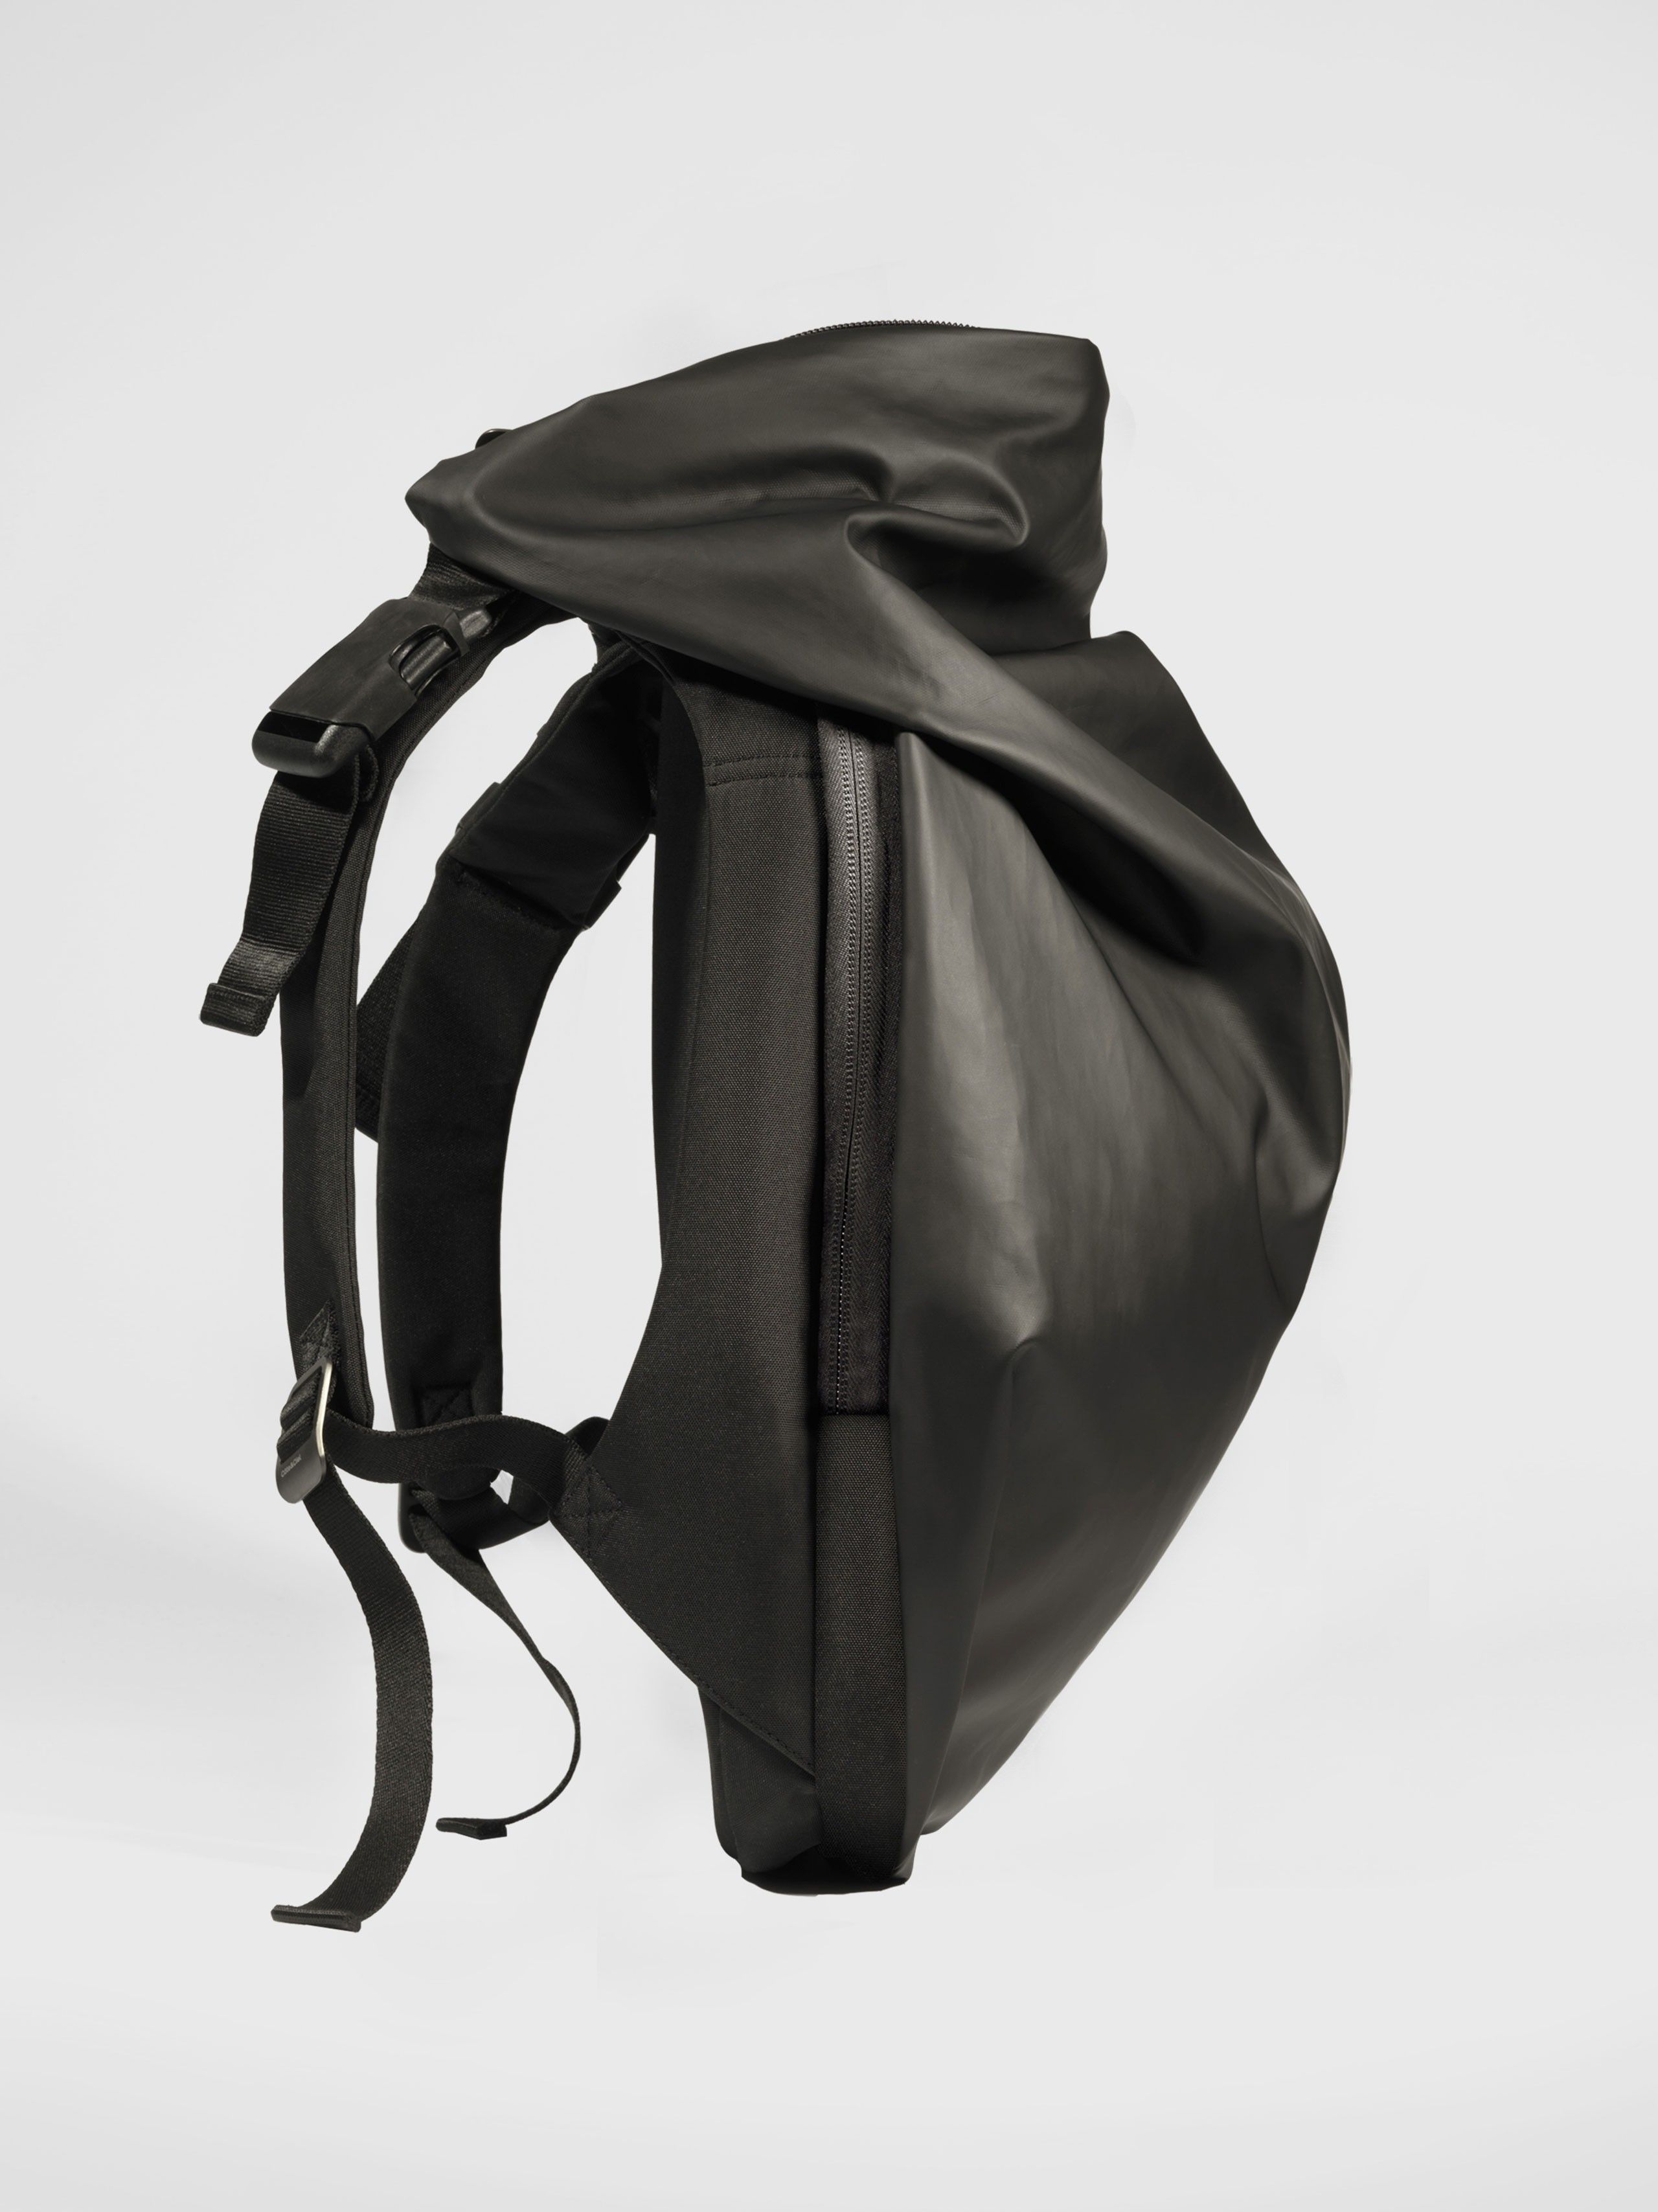 Côte&Ciel Nile Rucksack in Obsidian Black is one of our iconic ...